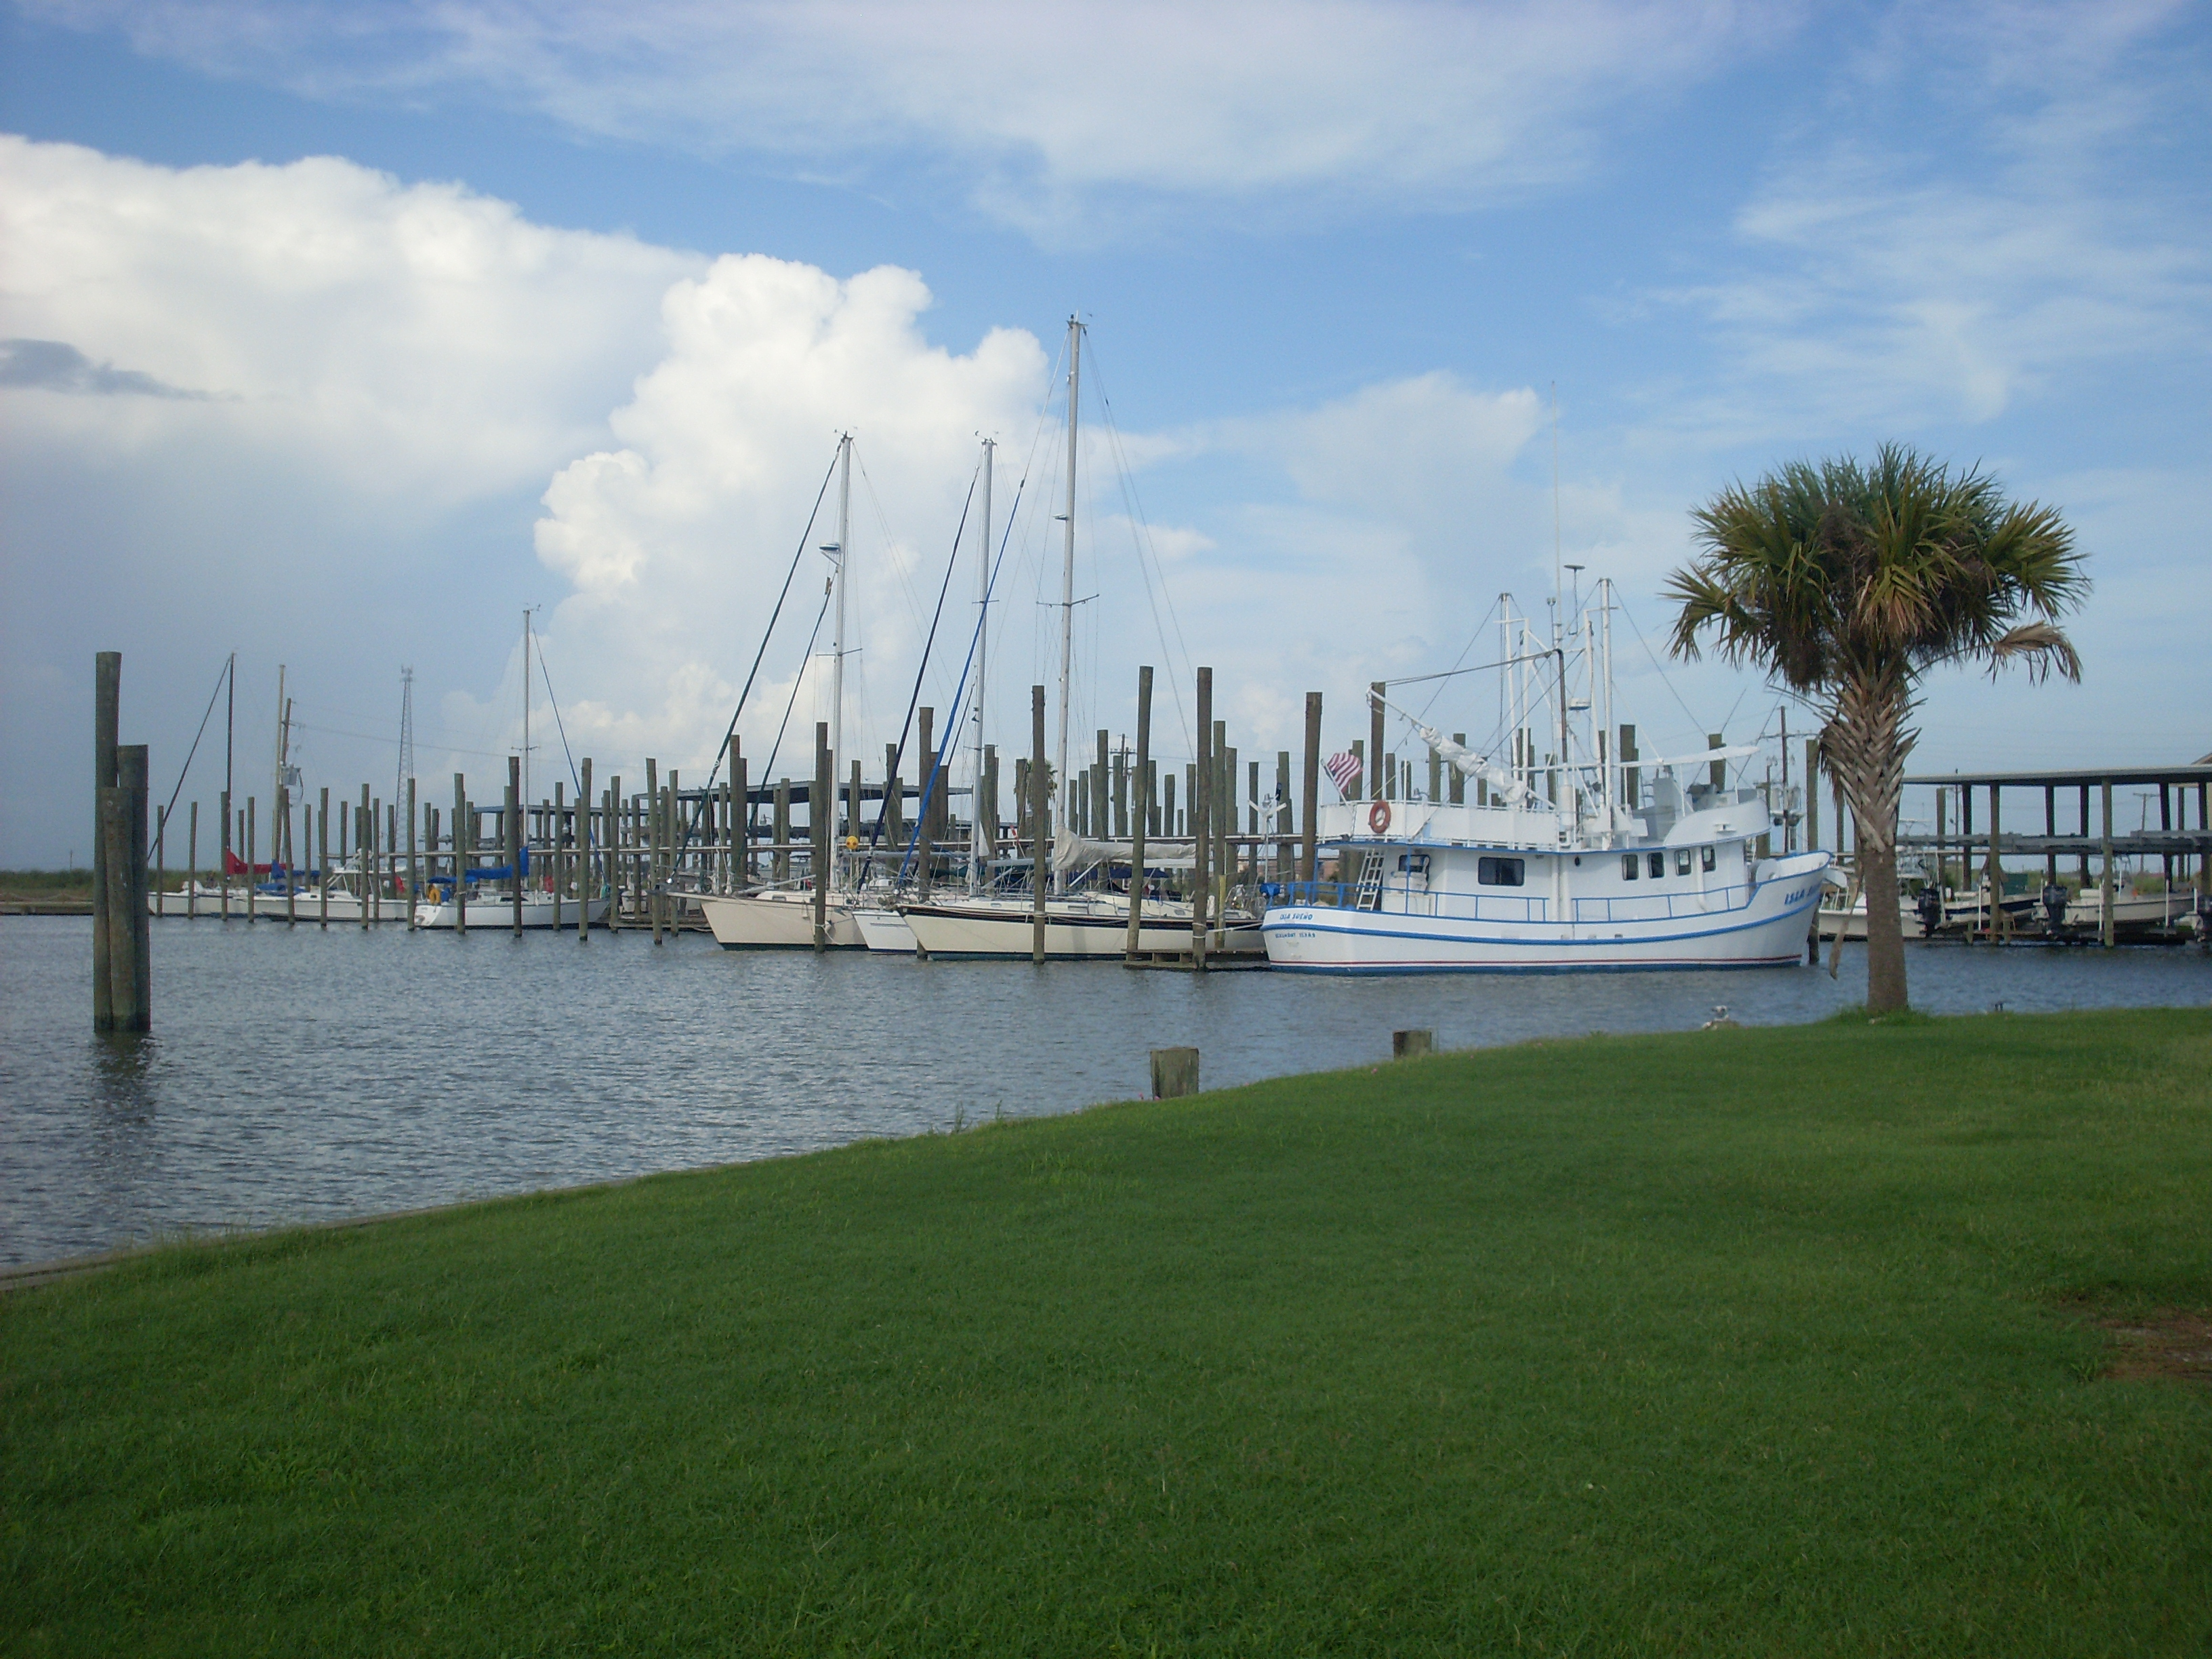 Sabine Pass Port Authority Marina in Sabine Pass, TX